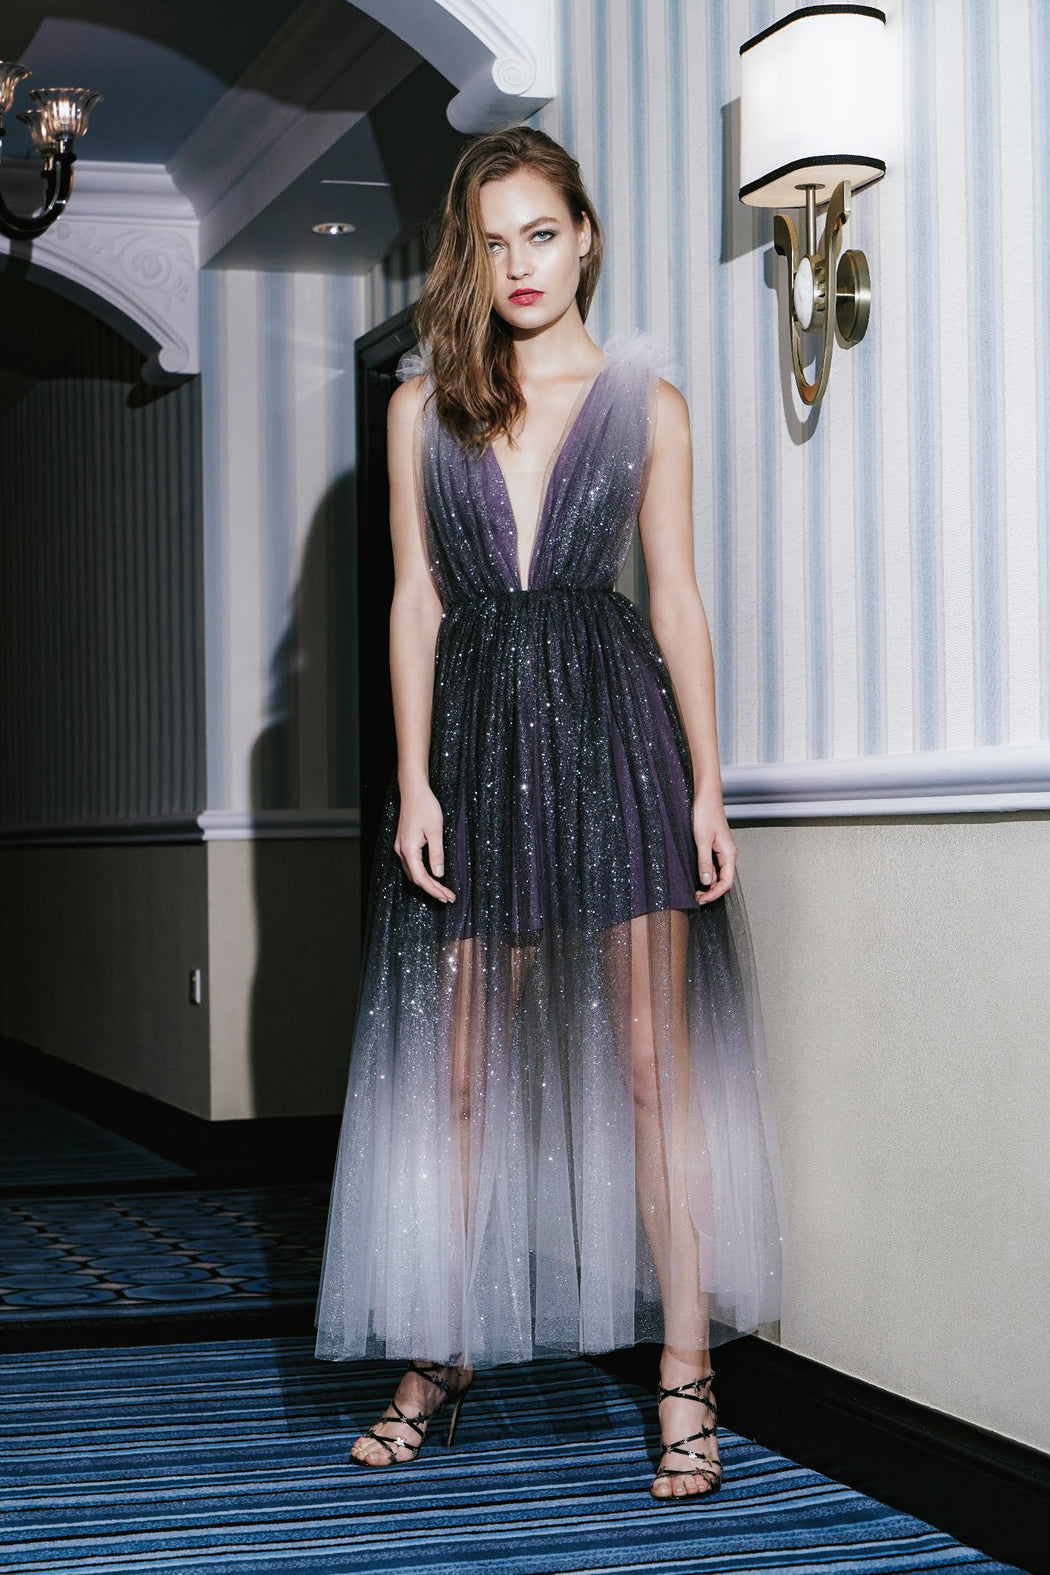 Heather Ombre Glitter Tulle Midi Dress